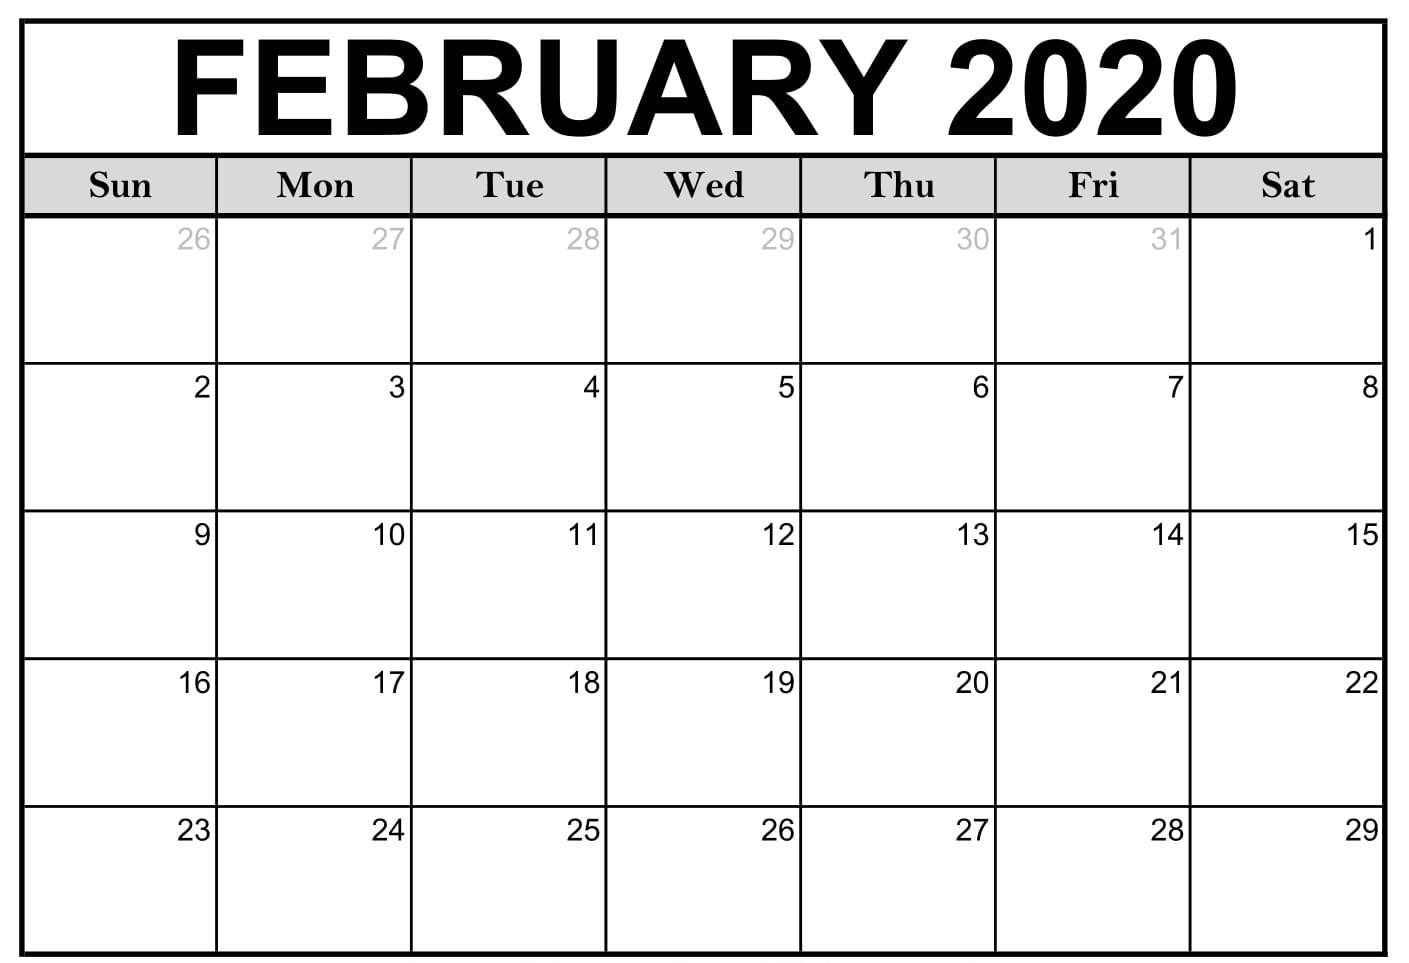 February 2020 Blank Calendar Printable Templates With Notes In